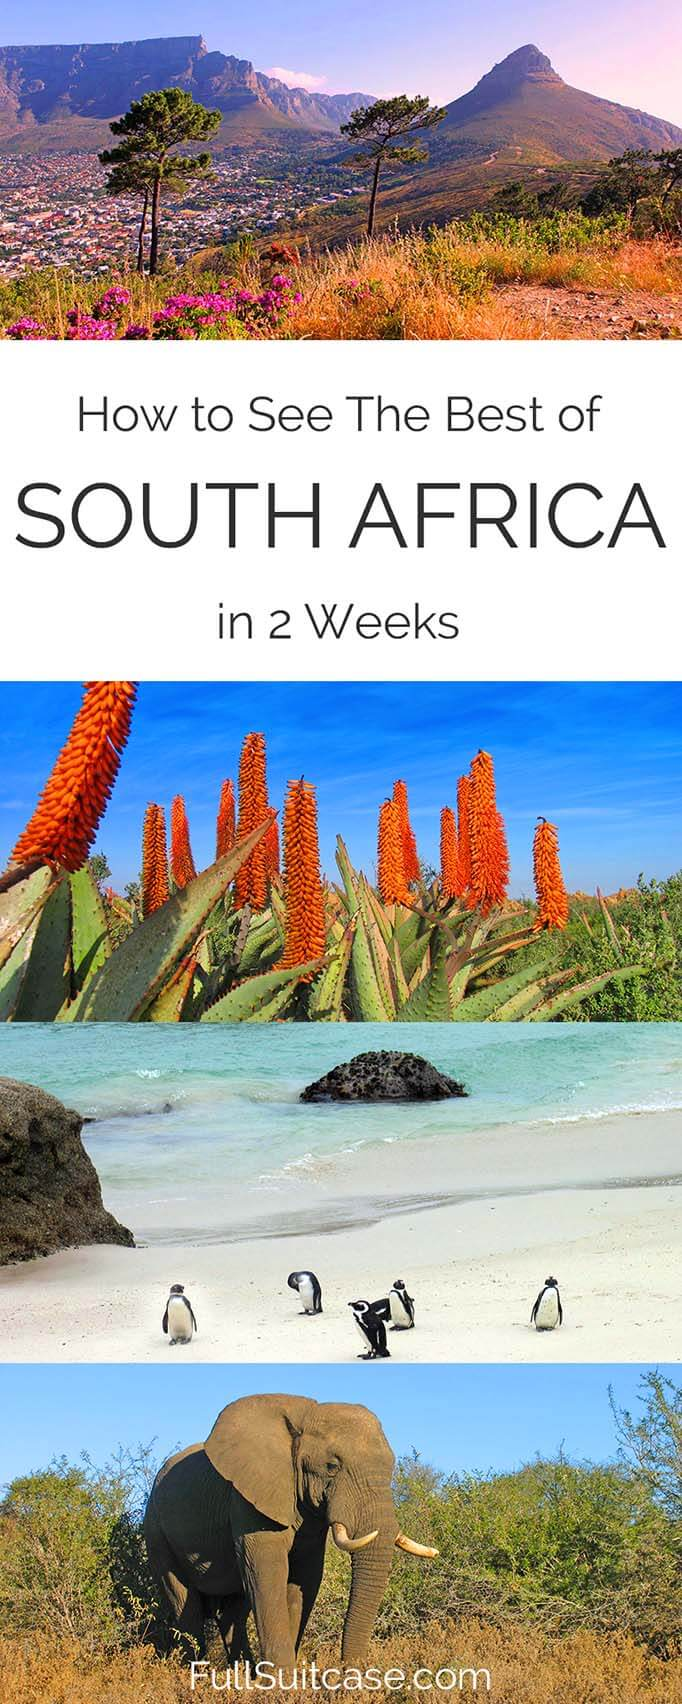 See the best of South Africa with this complete 2 week itinerary